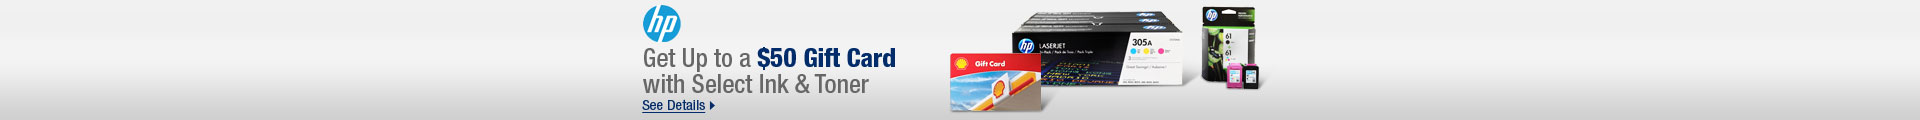 Get Up to a $50 Gift Card with Select Ink & Toner